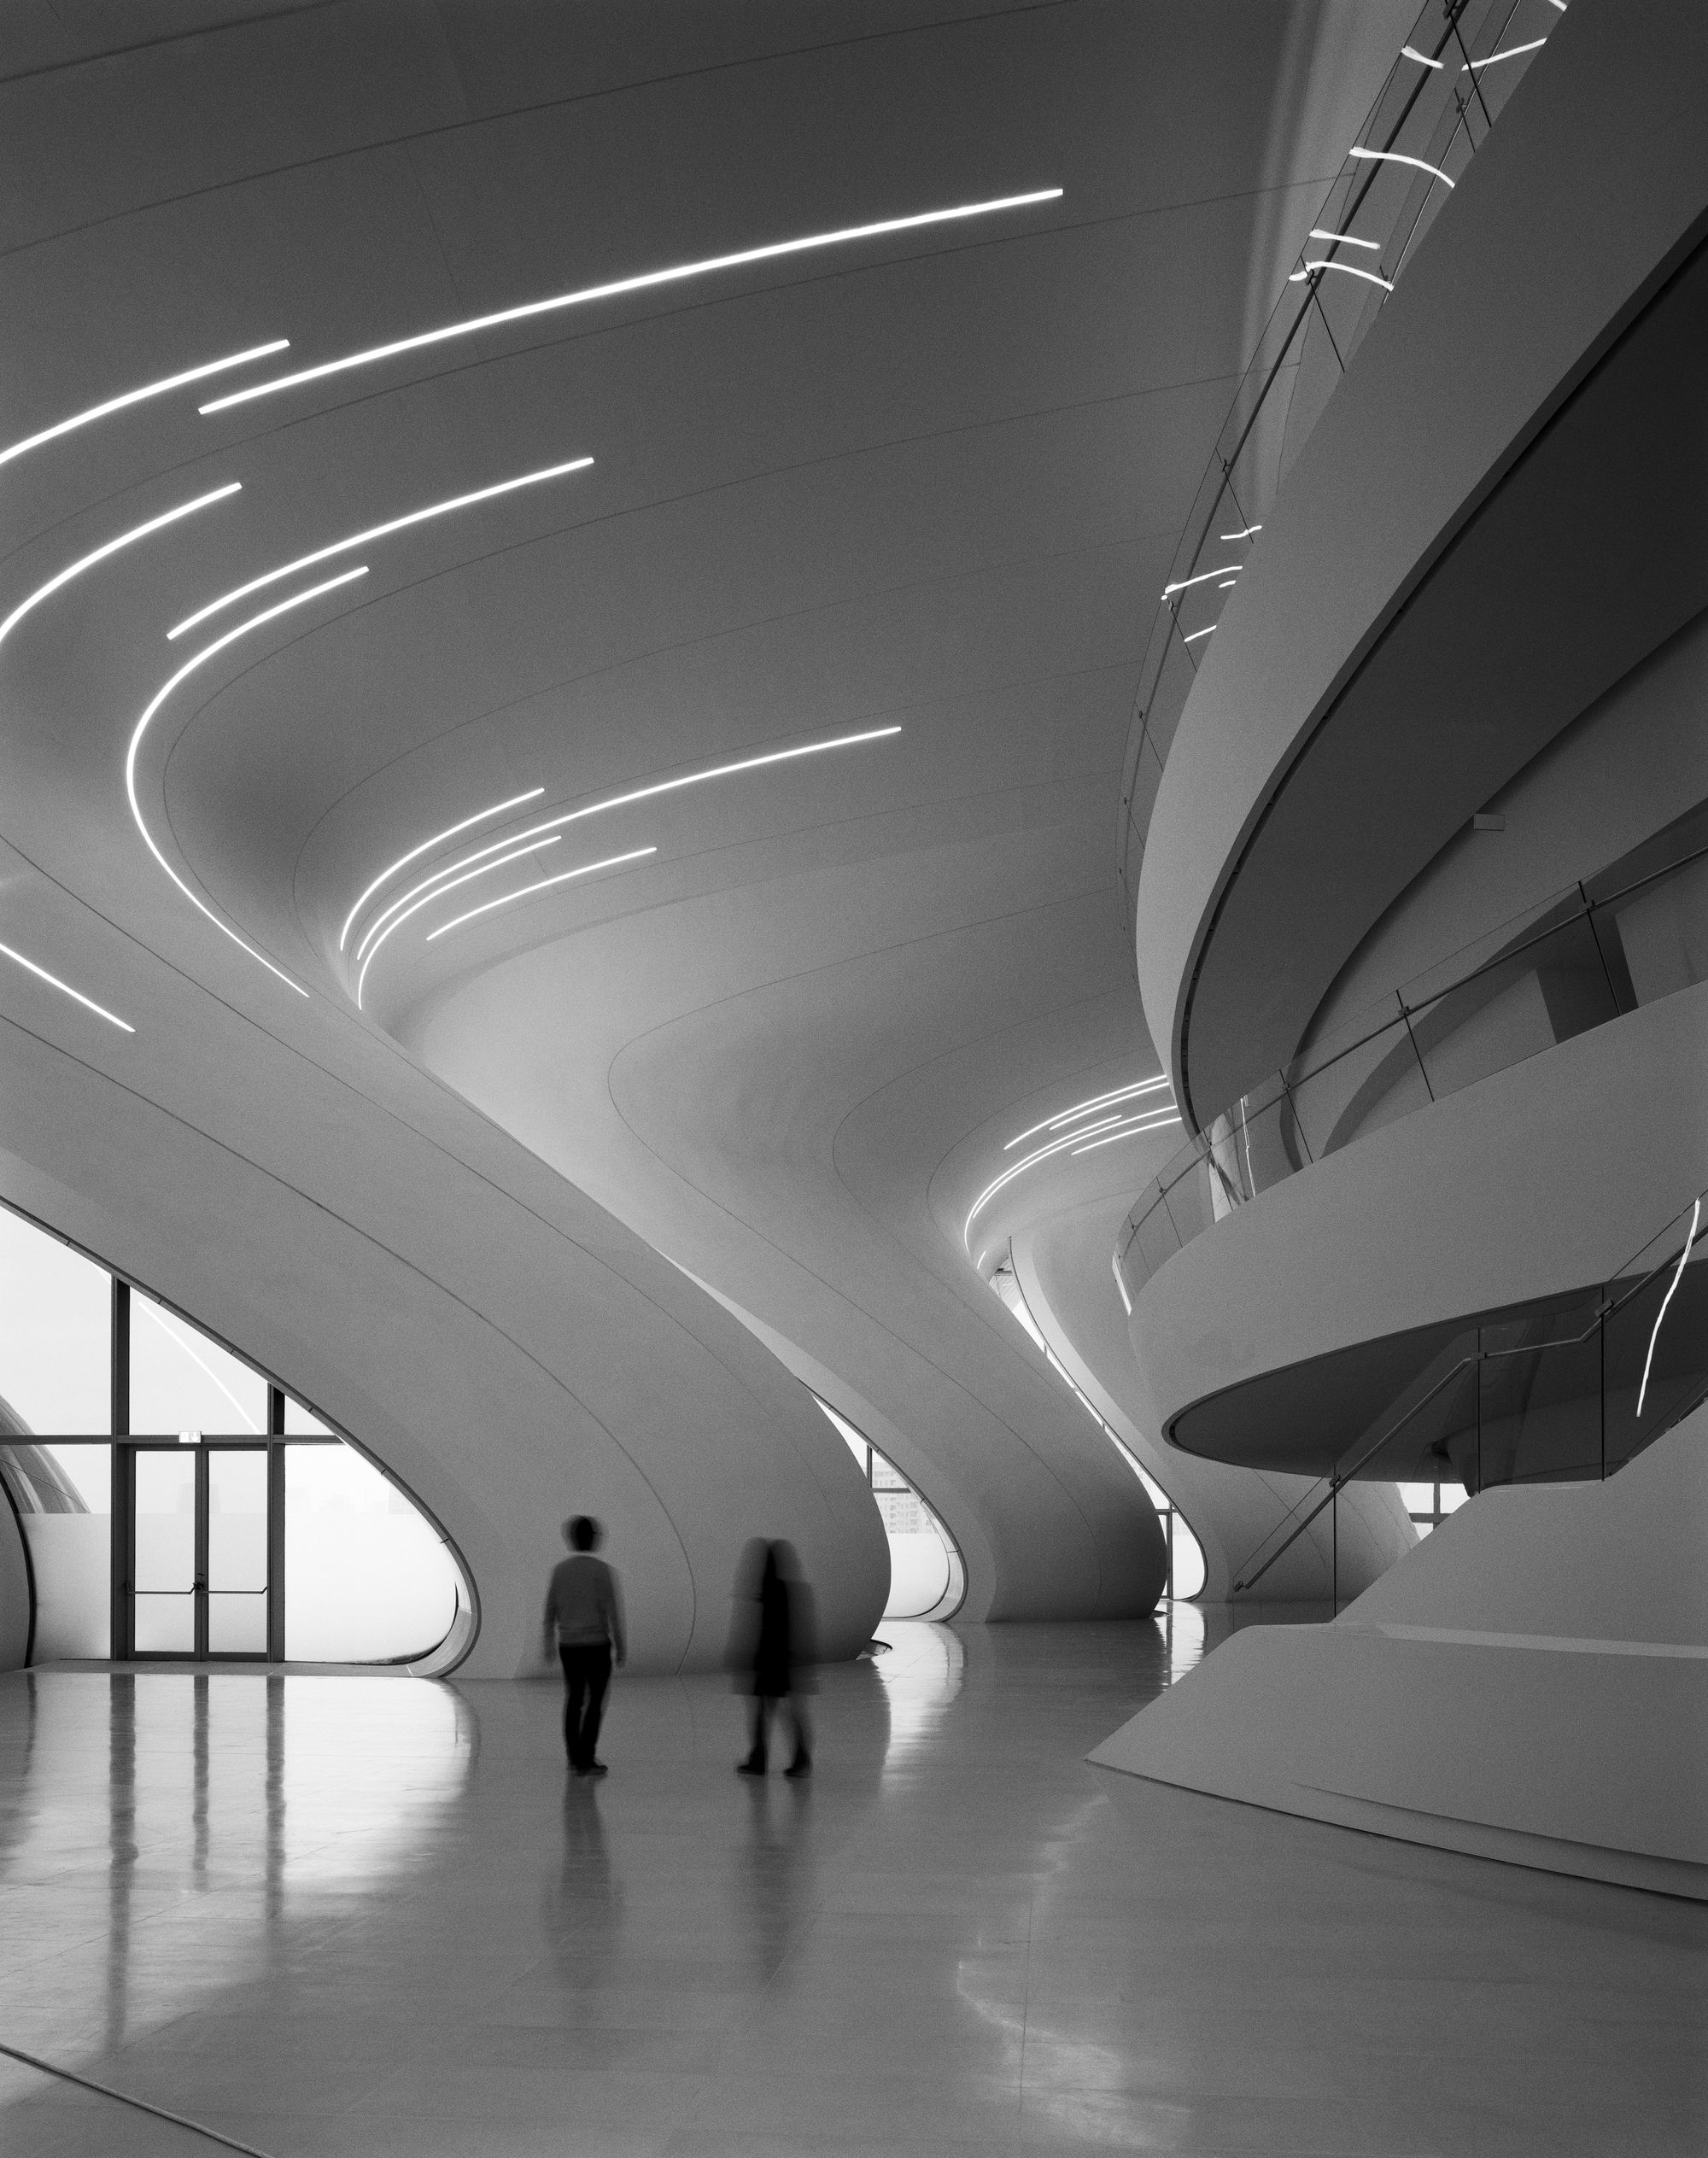 Zaha Hadid Architects  25 is part of architecture -  Zaha Hadid Architects  Photograph by Helene Binet